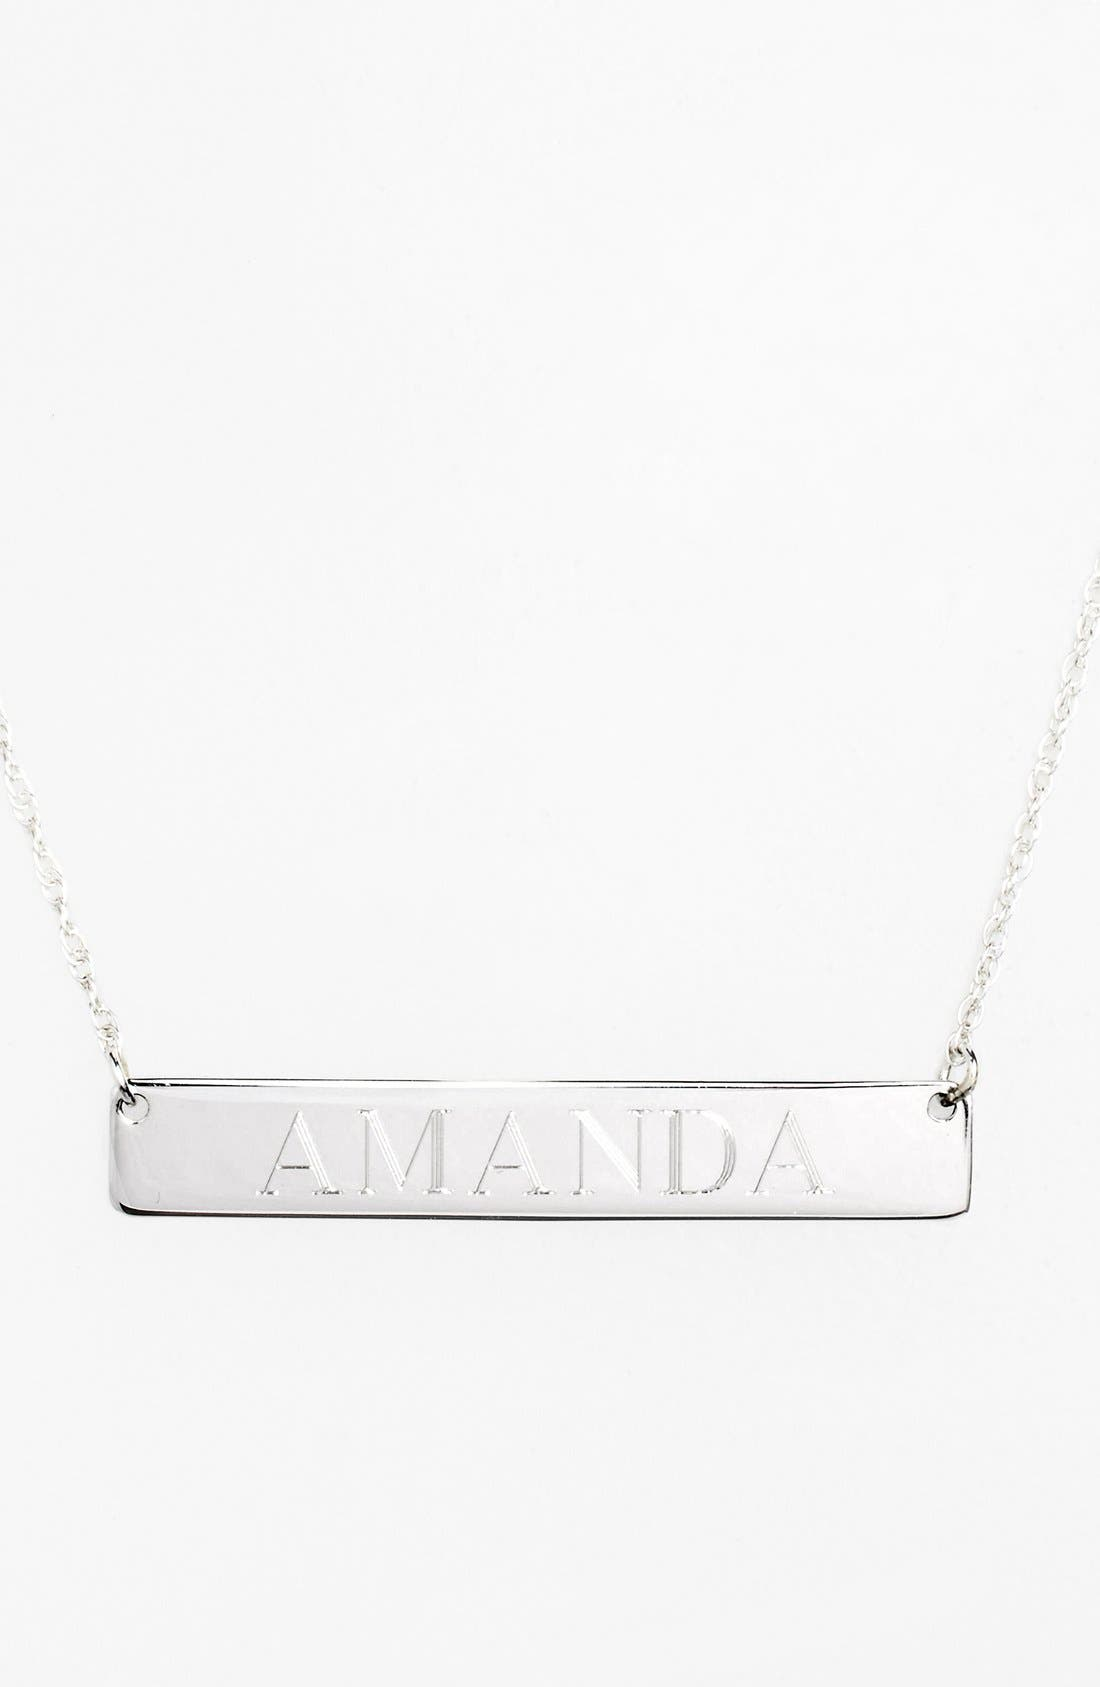 JANE BASCH DESIGNS Personalized Bar Pendant Necklace, Main, color, SILVER